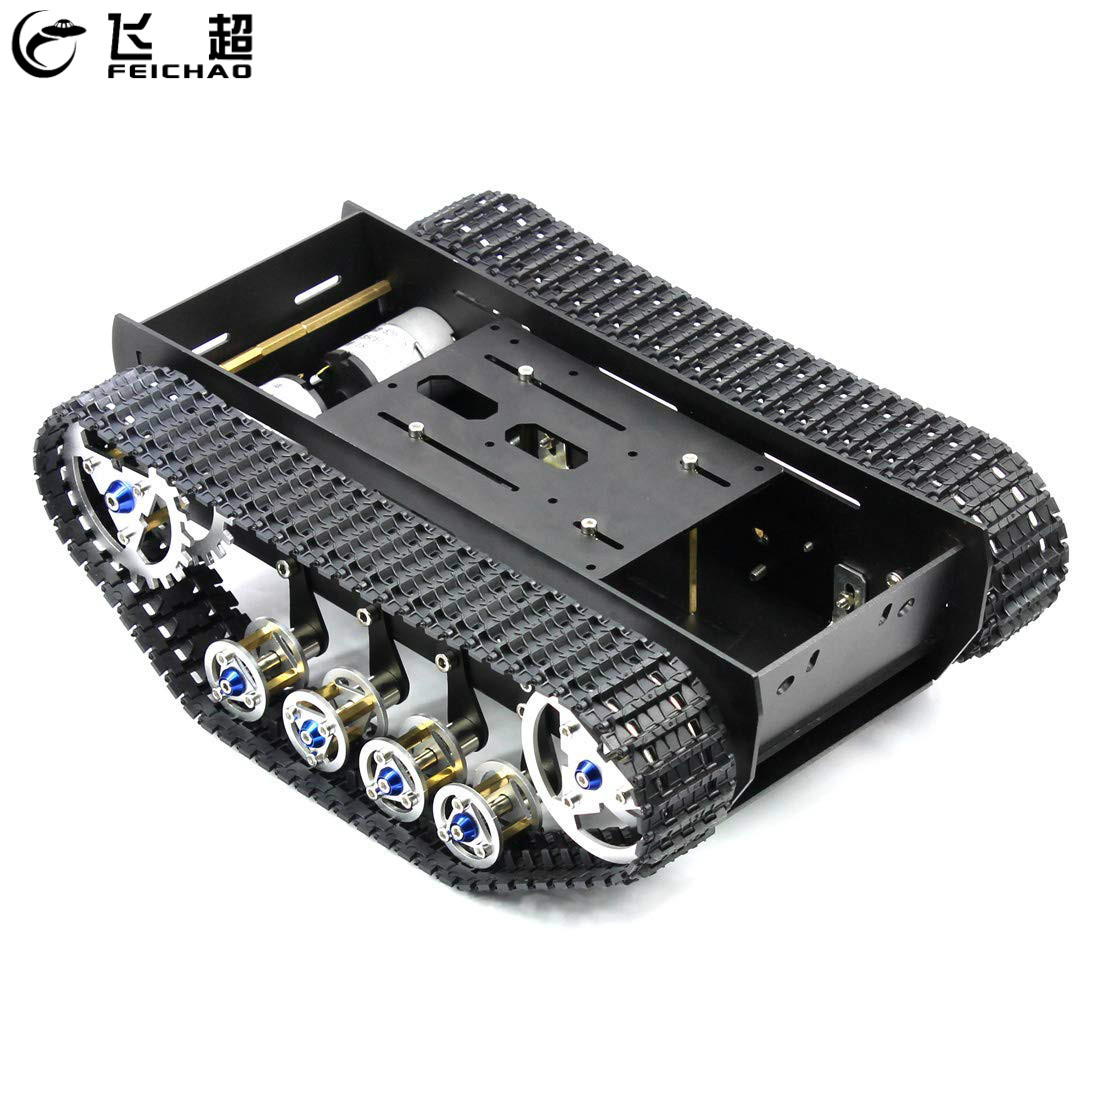 Smart Robot Car Chassis Handmade DIY Kit Light Shock Absorbed Damping Balance Tank Robot Chassis for Arduino Parts avc rubber damping nails for chassis fan black 8 pcs